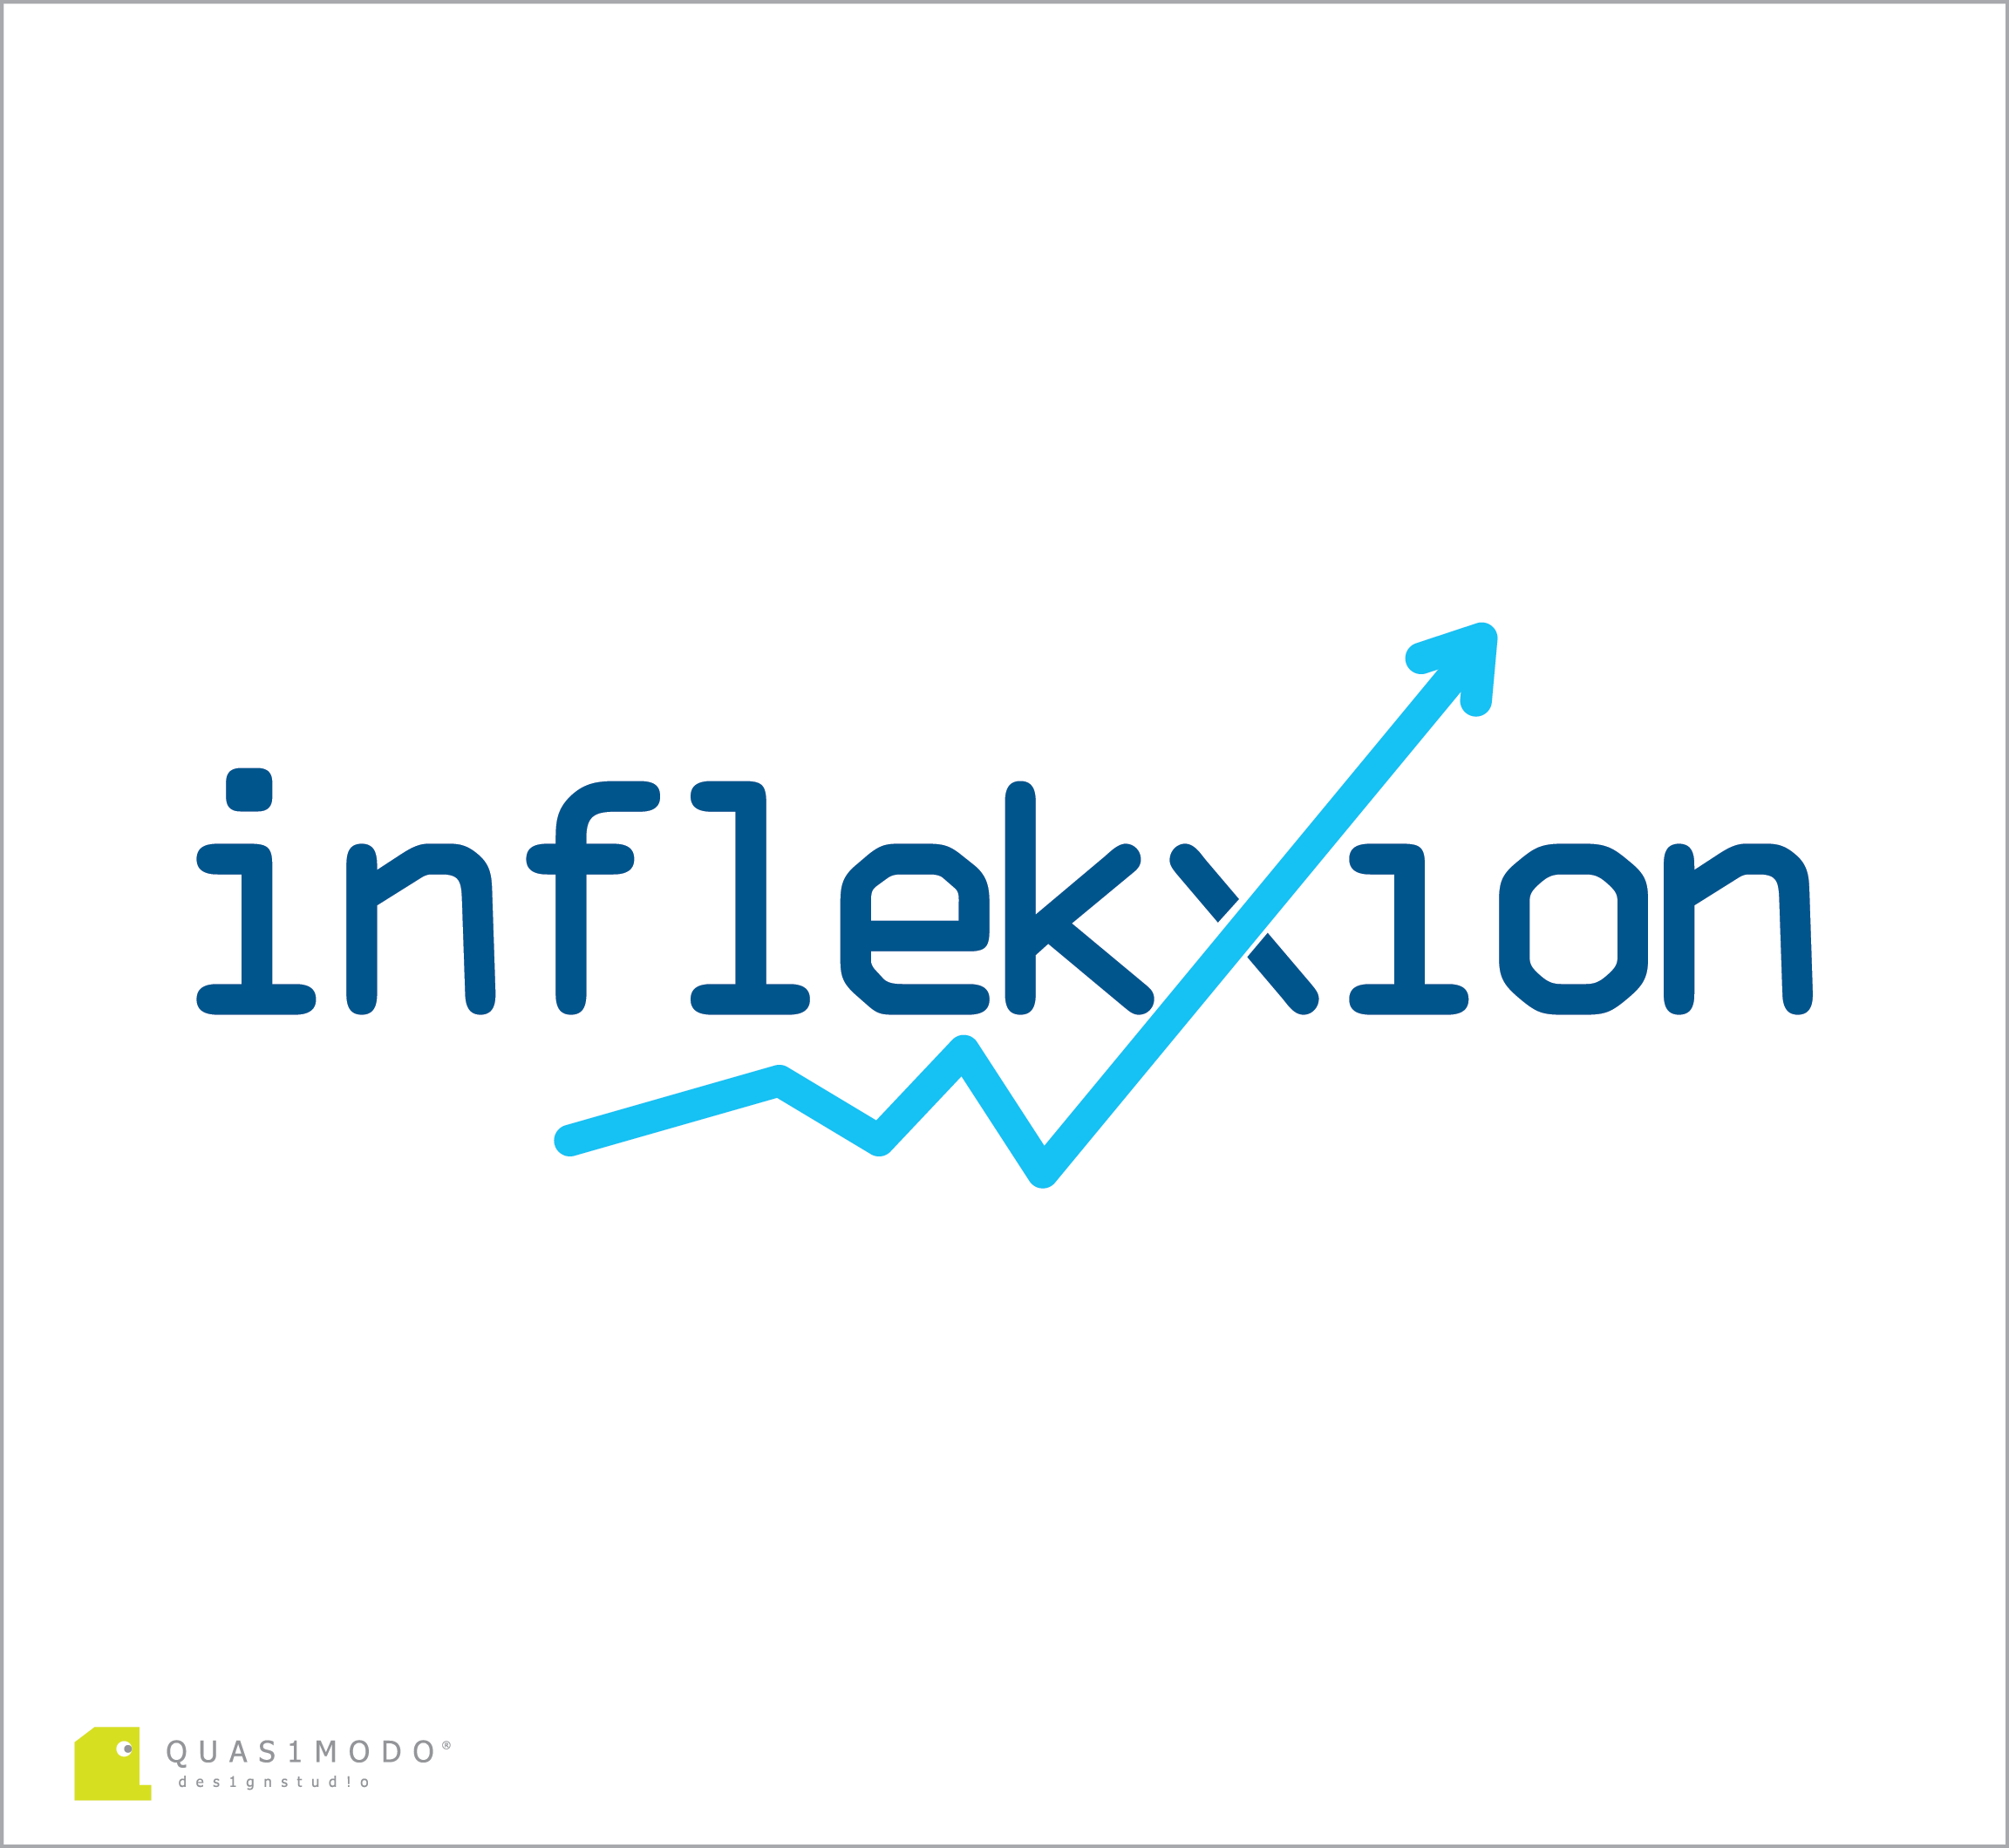 Logo Design by DIMITRIOS PAPADOPOULOS - Entry No. 144 in the Logo Design Contest Professional Logo Design for Inflekxion.